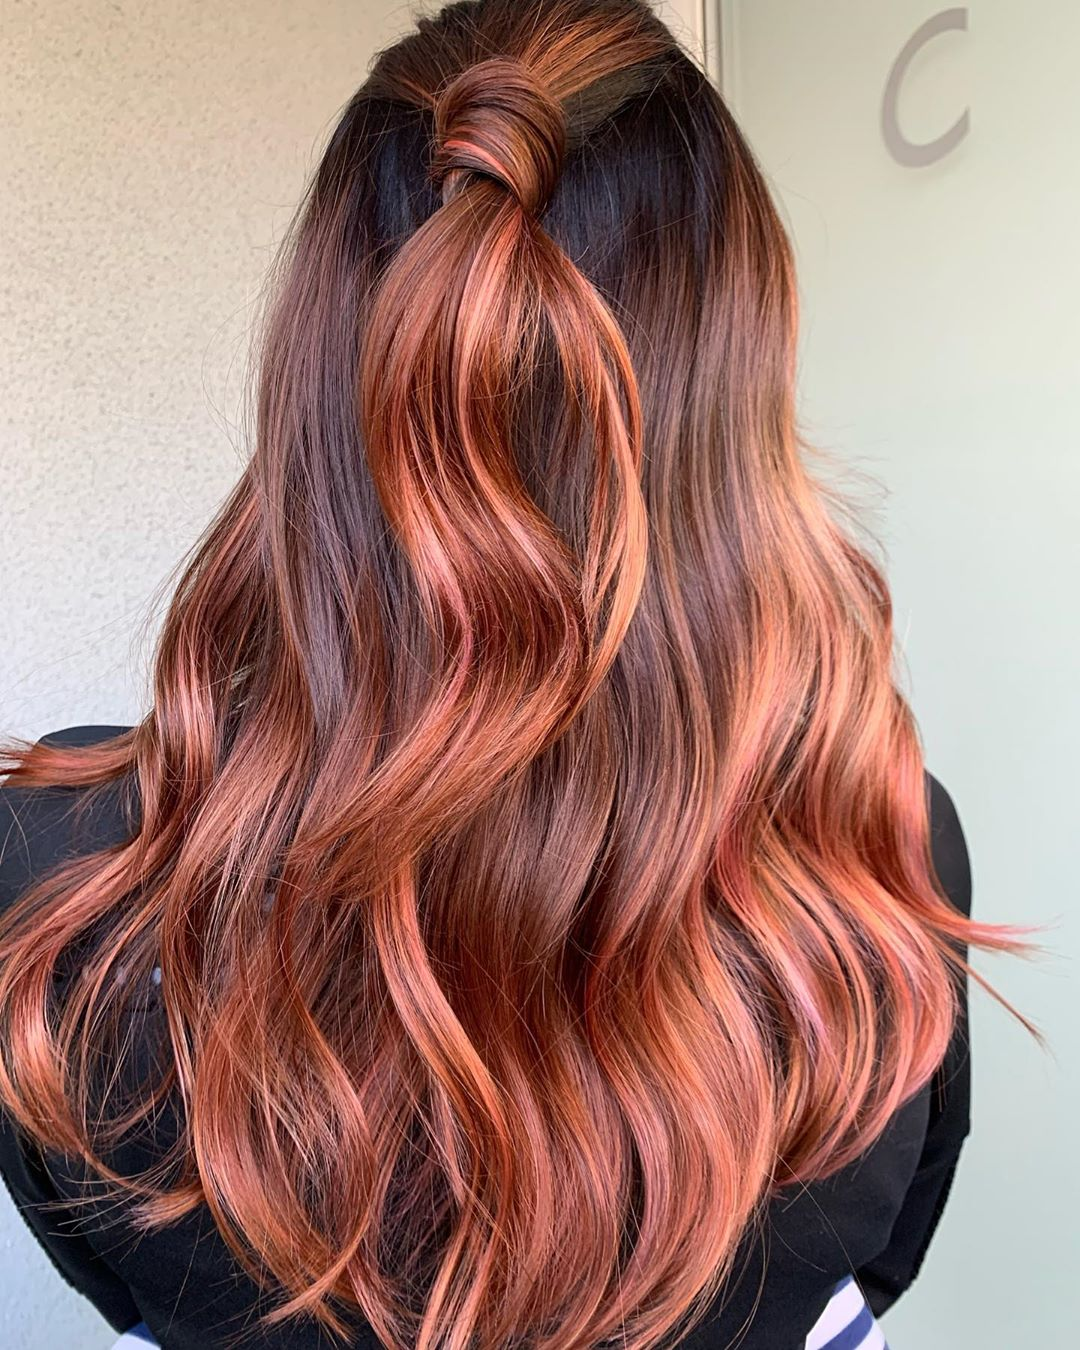 Rose Gold and Red Balayage Highlights